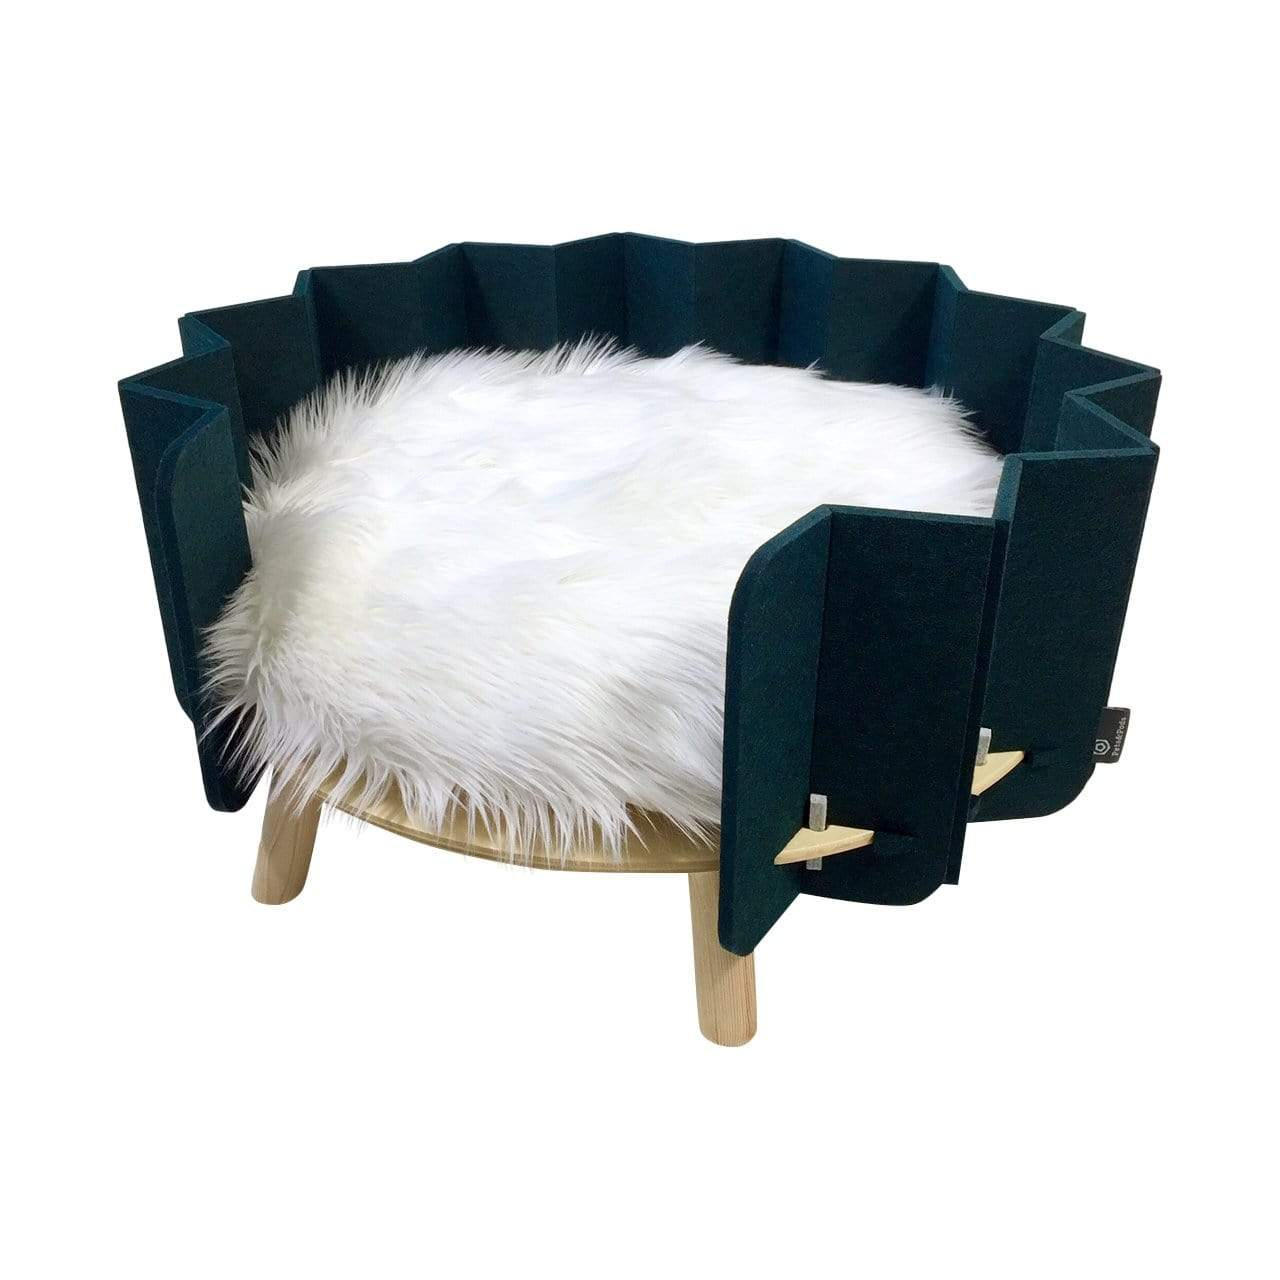 Pets&Pods Beds + Mats Green / White Faux Fur Cushion Biscuit Pet Bed